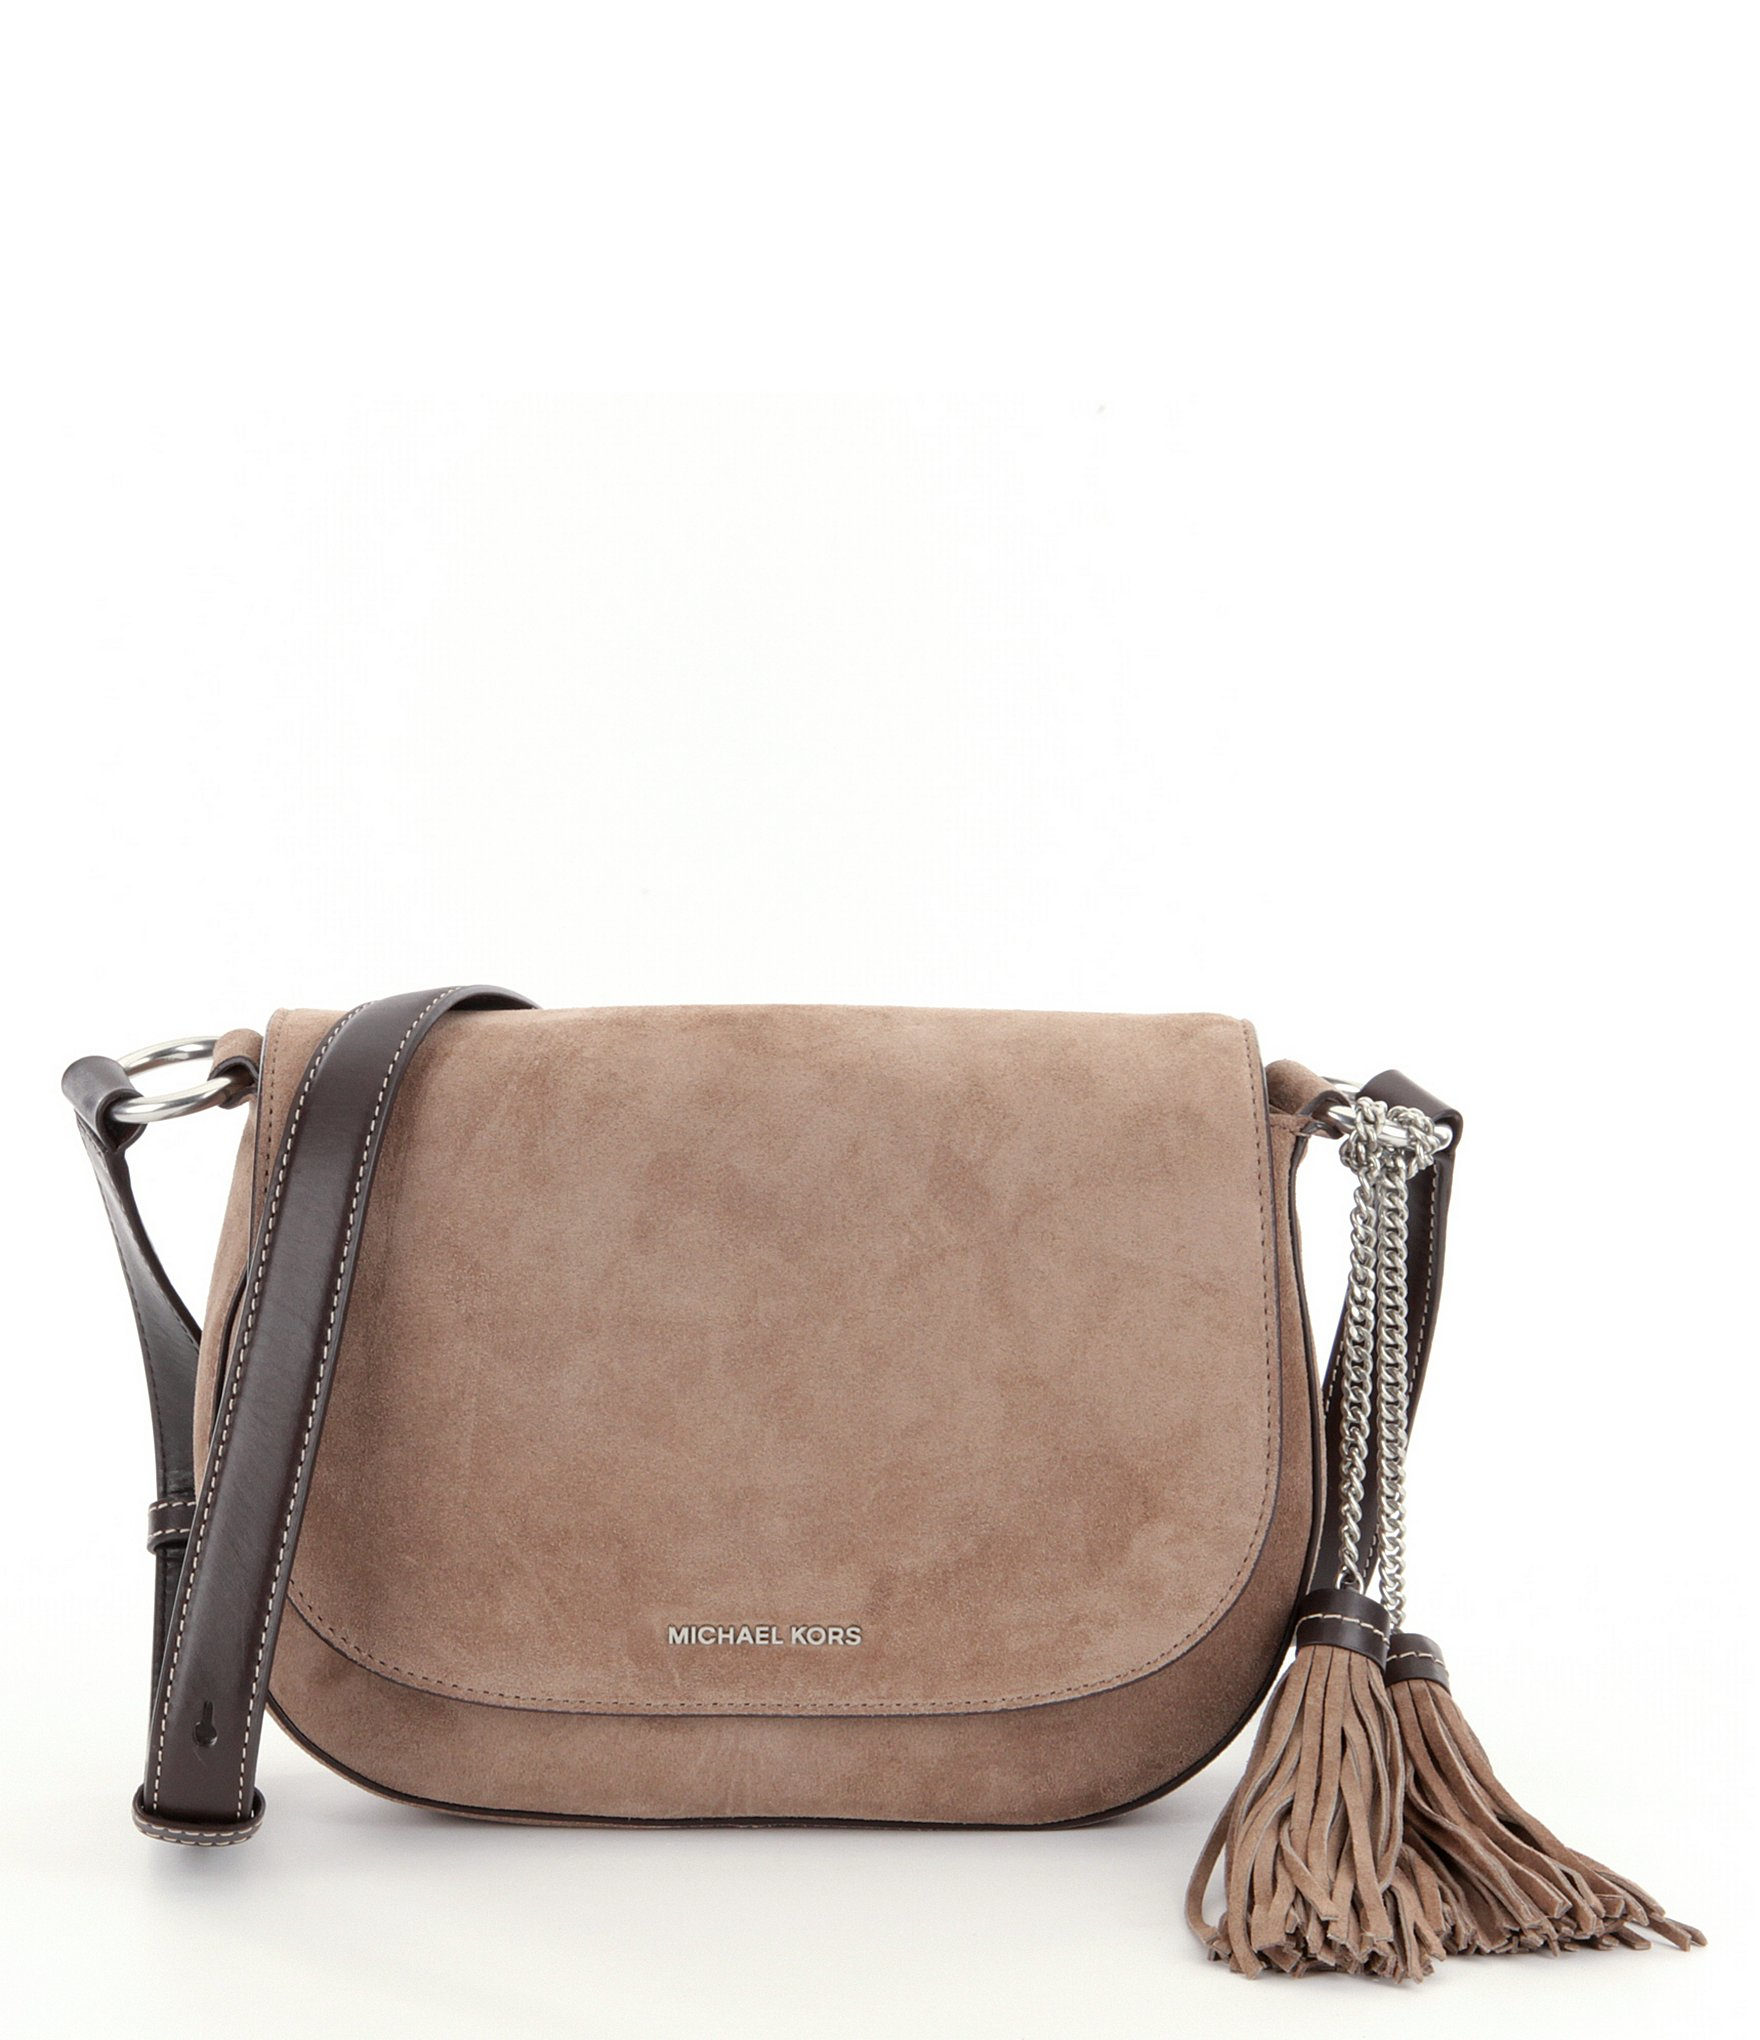 c9c6a7ad92237 MICHAEL Michael Kors Elyse Large Suede Saddle Bag in Brown - Lyst